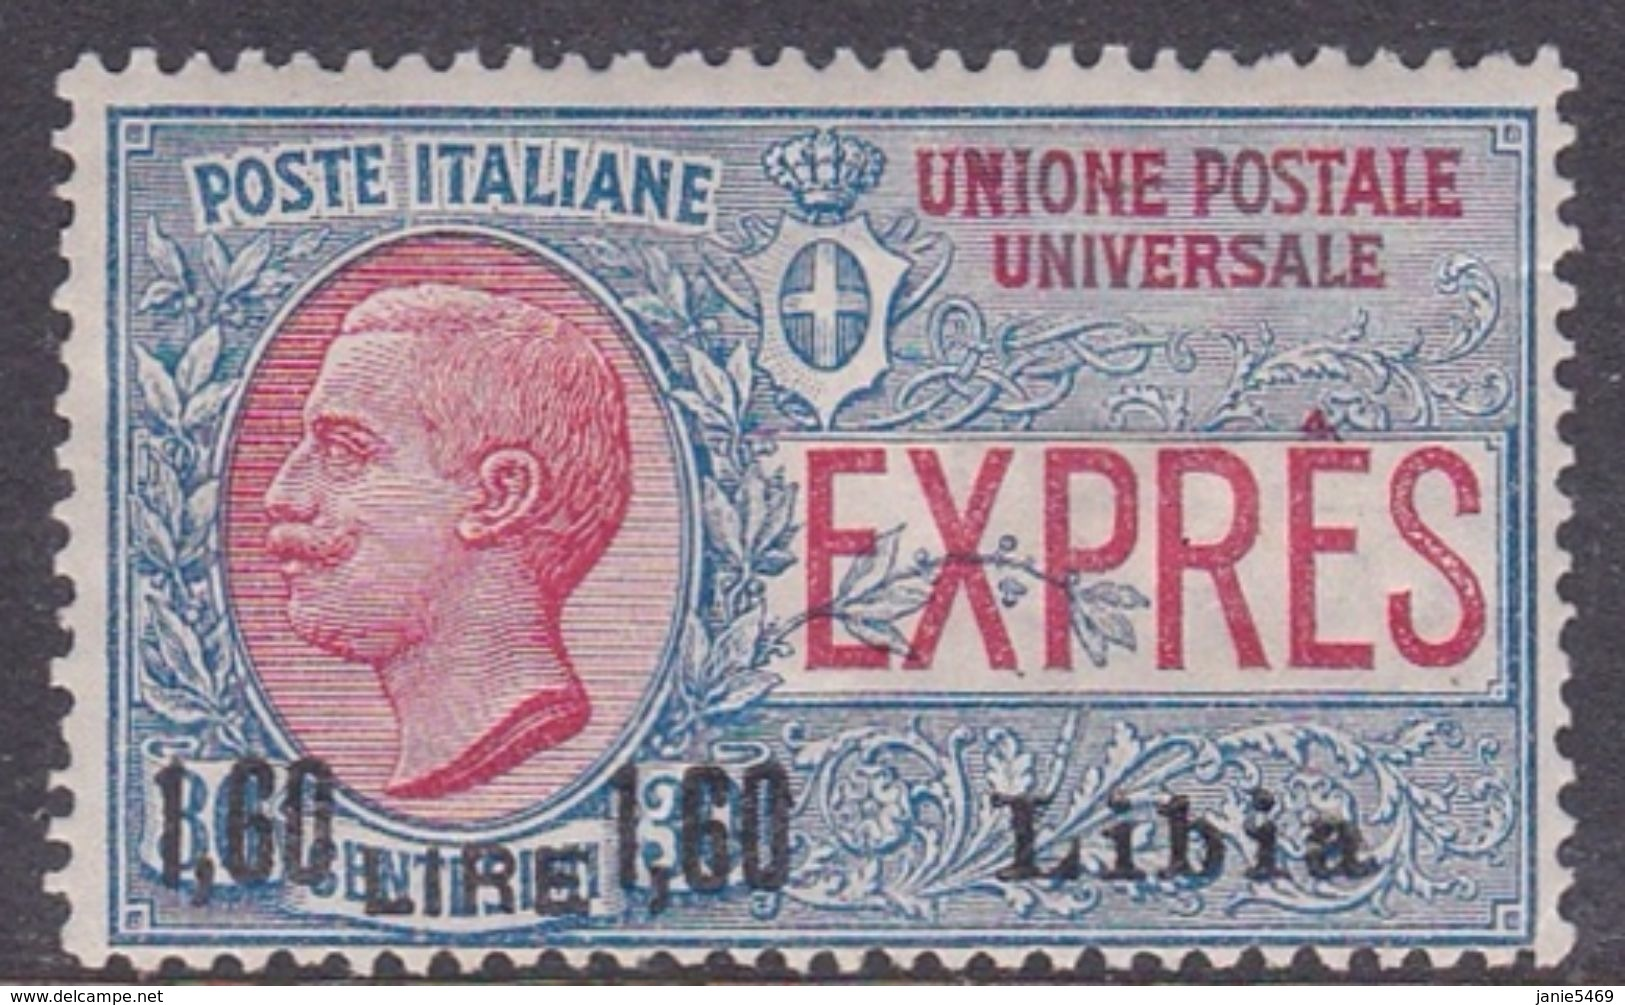 Italy-Colonies And Territories-Libya E 6 1922 Special Delivery Stamp, Lira 1.60 On 30c  Blue And Rose, Mint Hinged - Libya